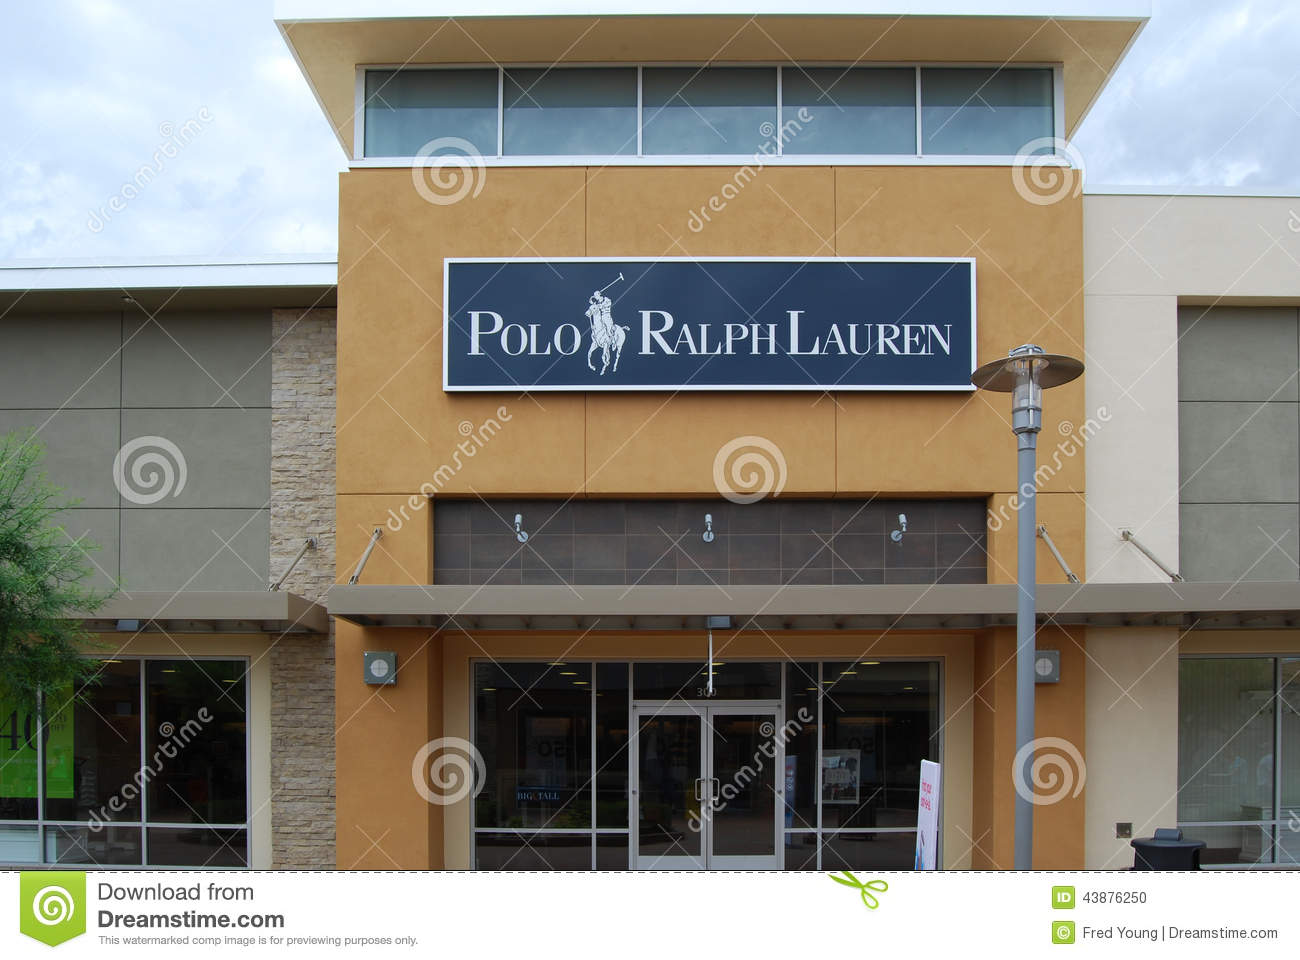 Ralph lauren signage on its outlet in klcc kuala lumpur for International decor outlet corp